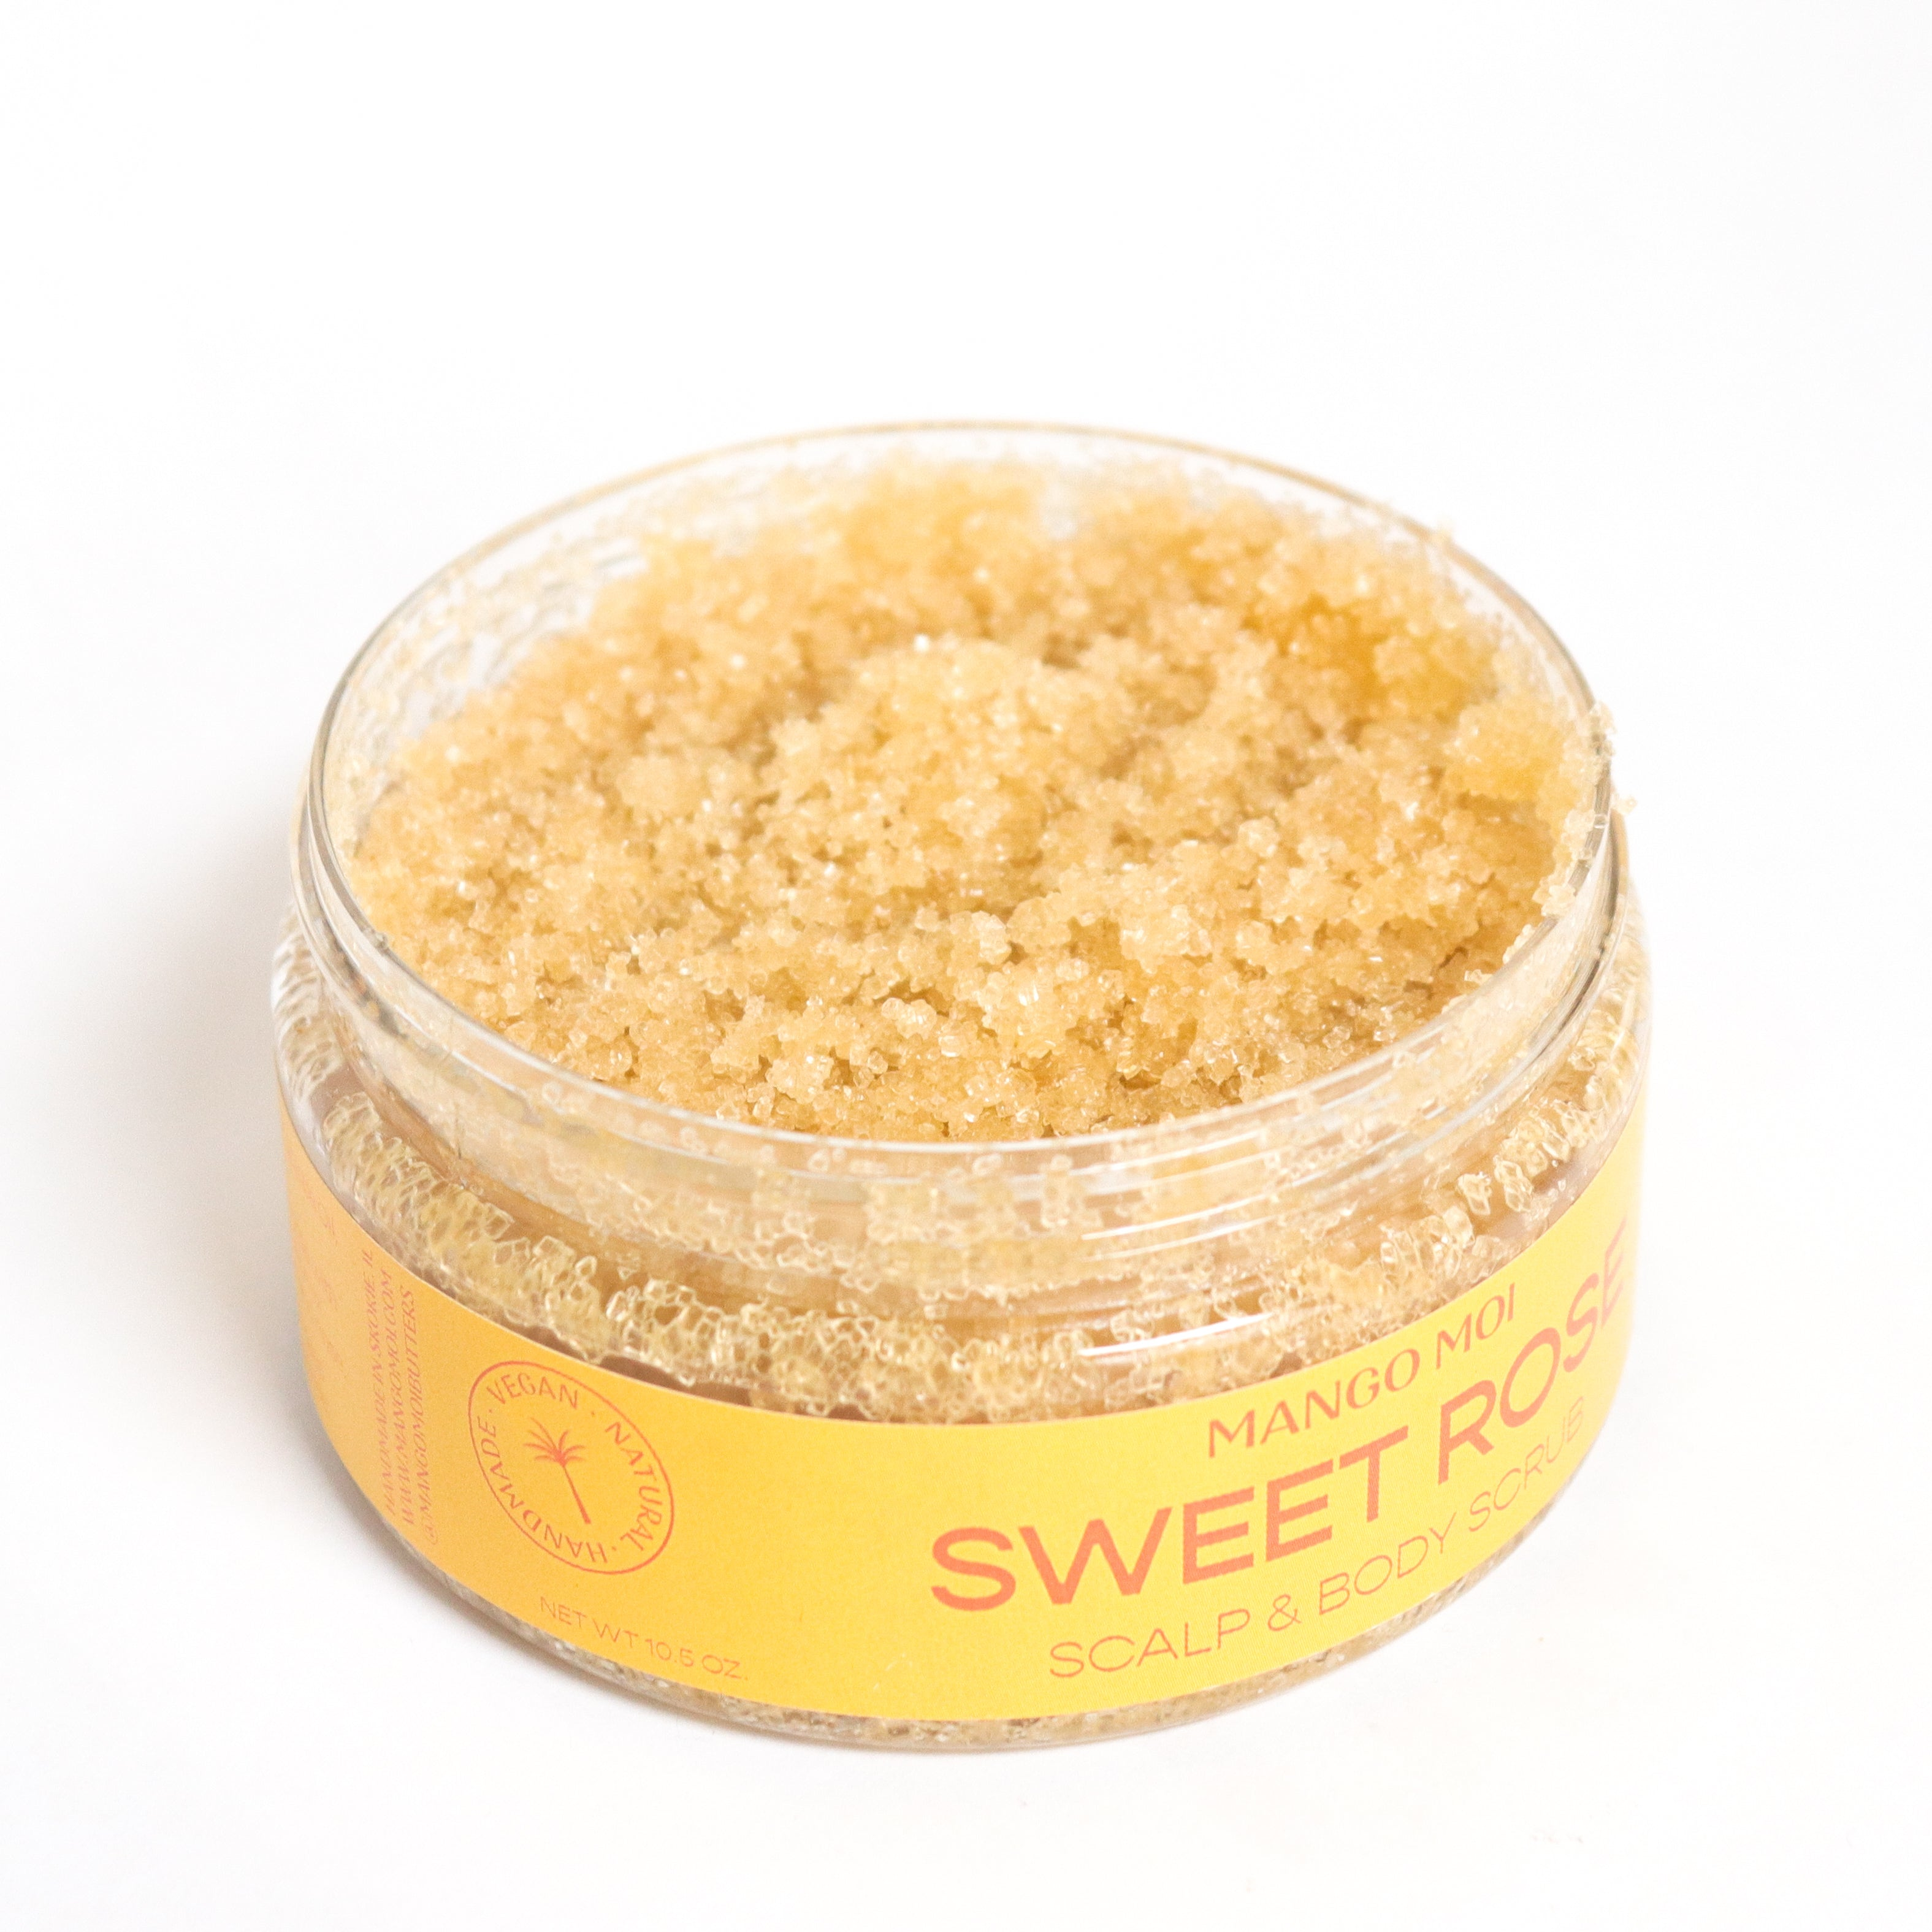 Sweet Rose Scalp & Body Scrub